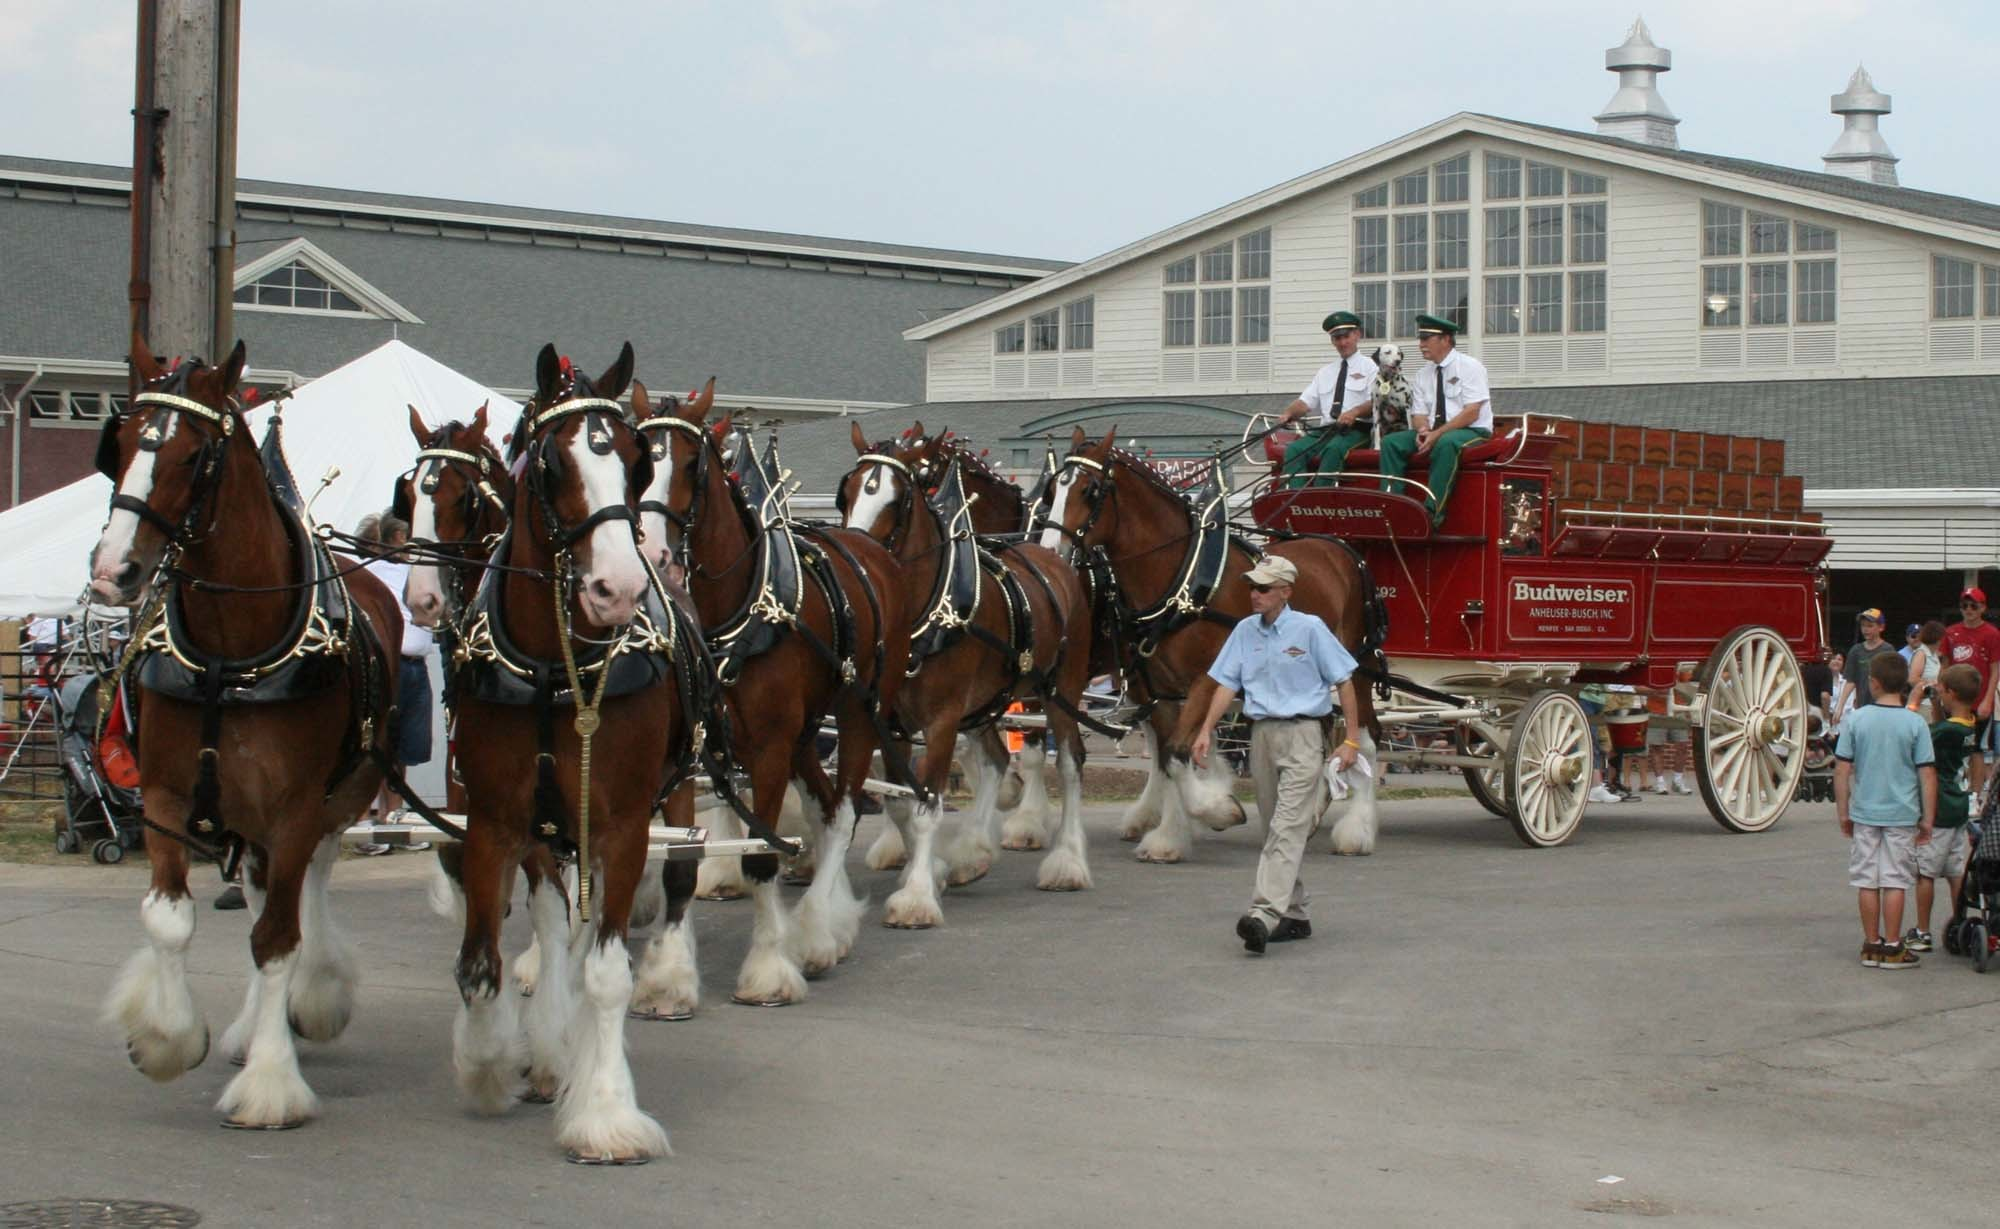 Res: 2000x1229, Budweiser Clydesdale Horses